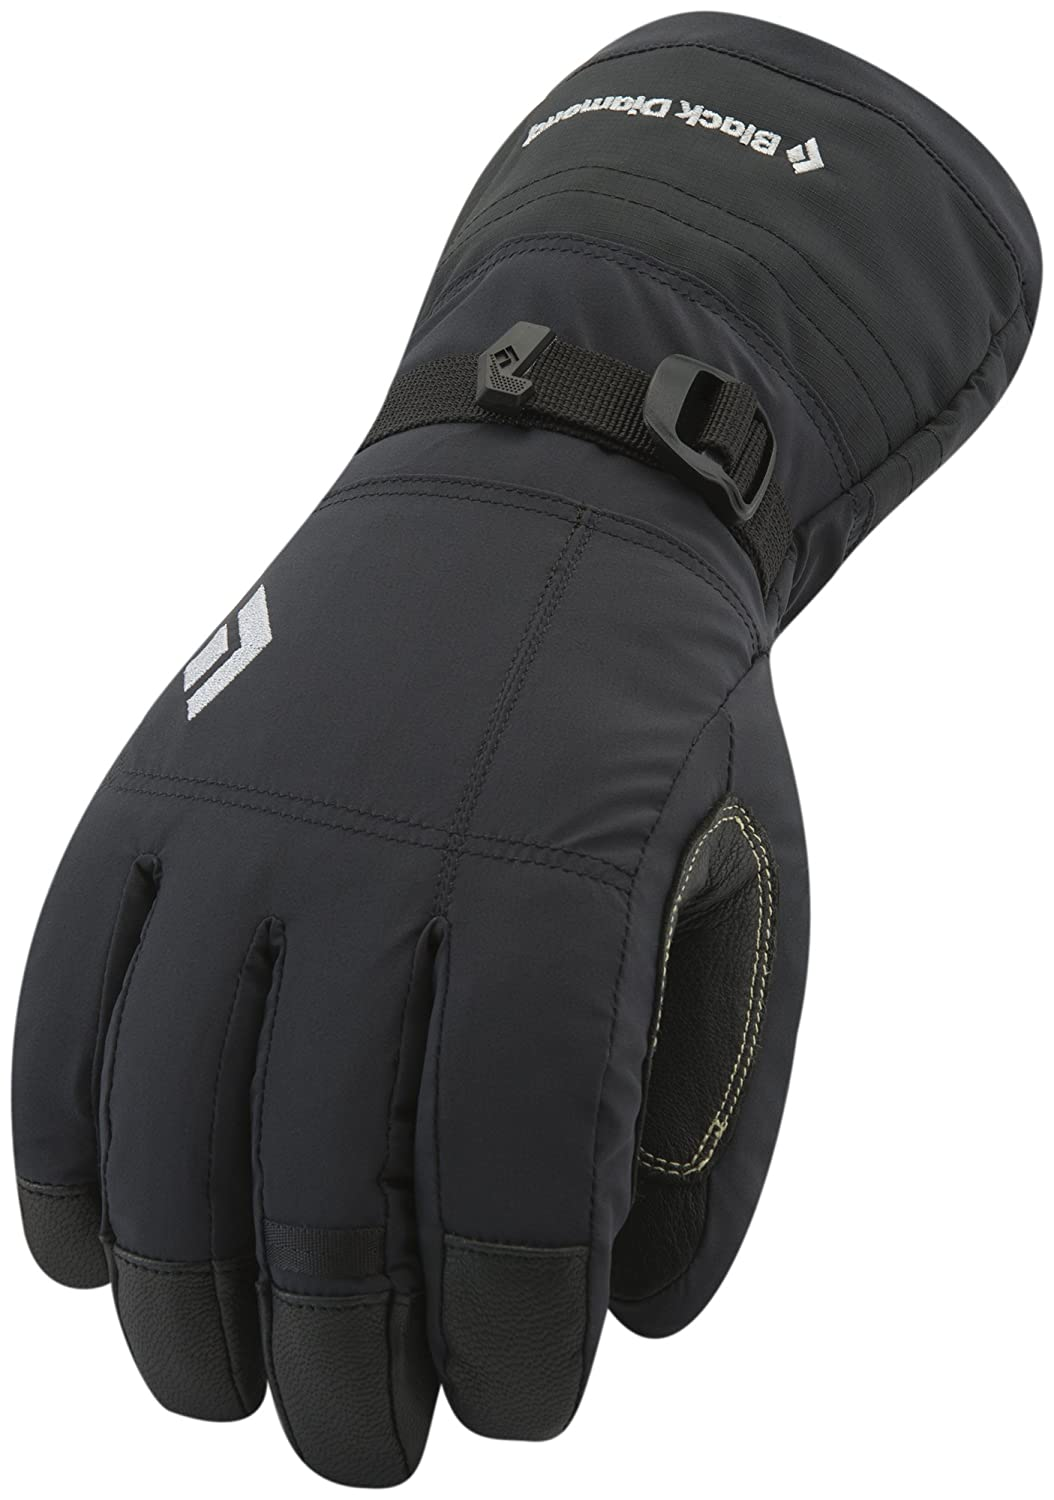 Black diamond guide gloves xl - Amazon Com Black Diamond Soloist Cold Weather Gloves Sports Outdoors